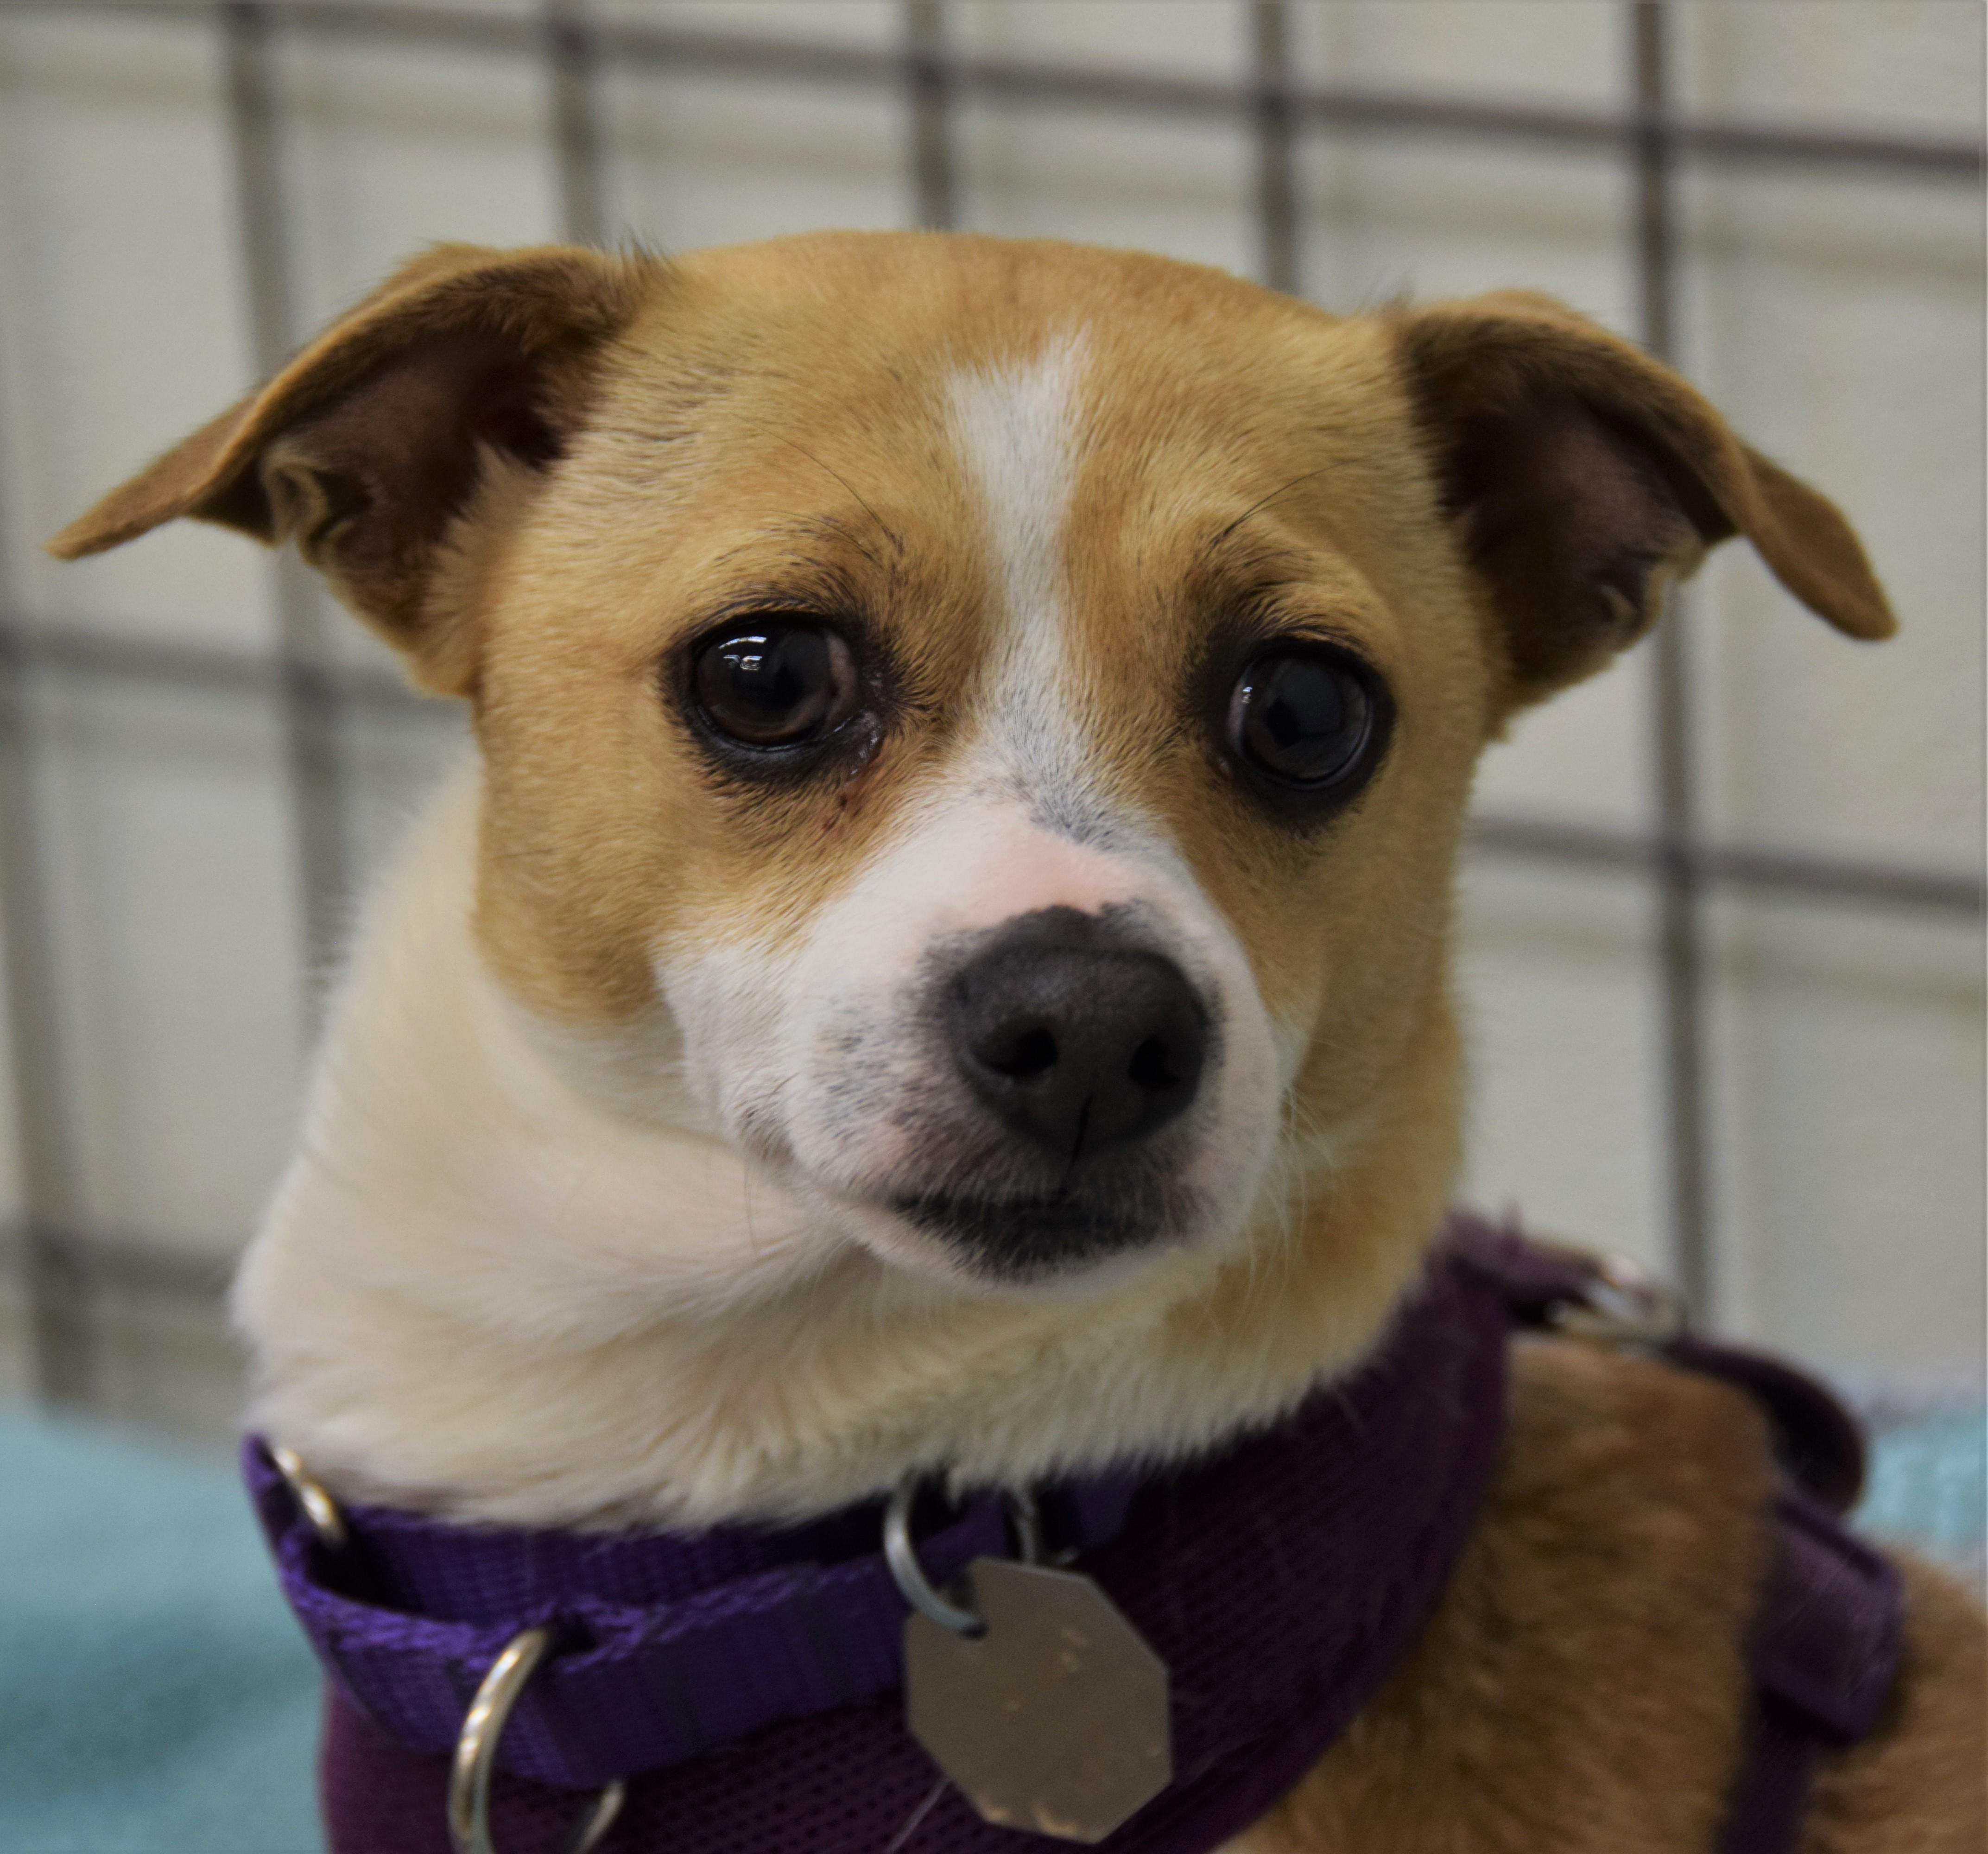 Charlie is my name, adorable is my game! I'm a three-year-old Jack Russell Terrier Chihuahua mix who would love to fit into your quiet, predictable routine! I can be a bit shy in new situations so a dog savvy home with teens and adults will help me thrive. I can't wait to be your loyal, dedicated companion!